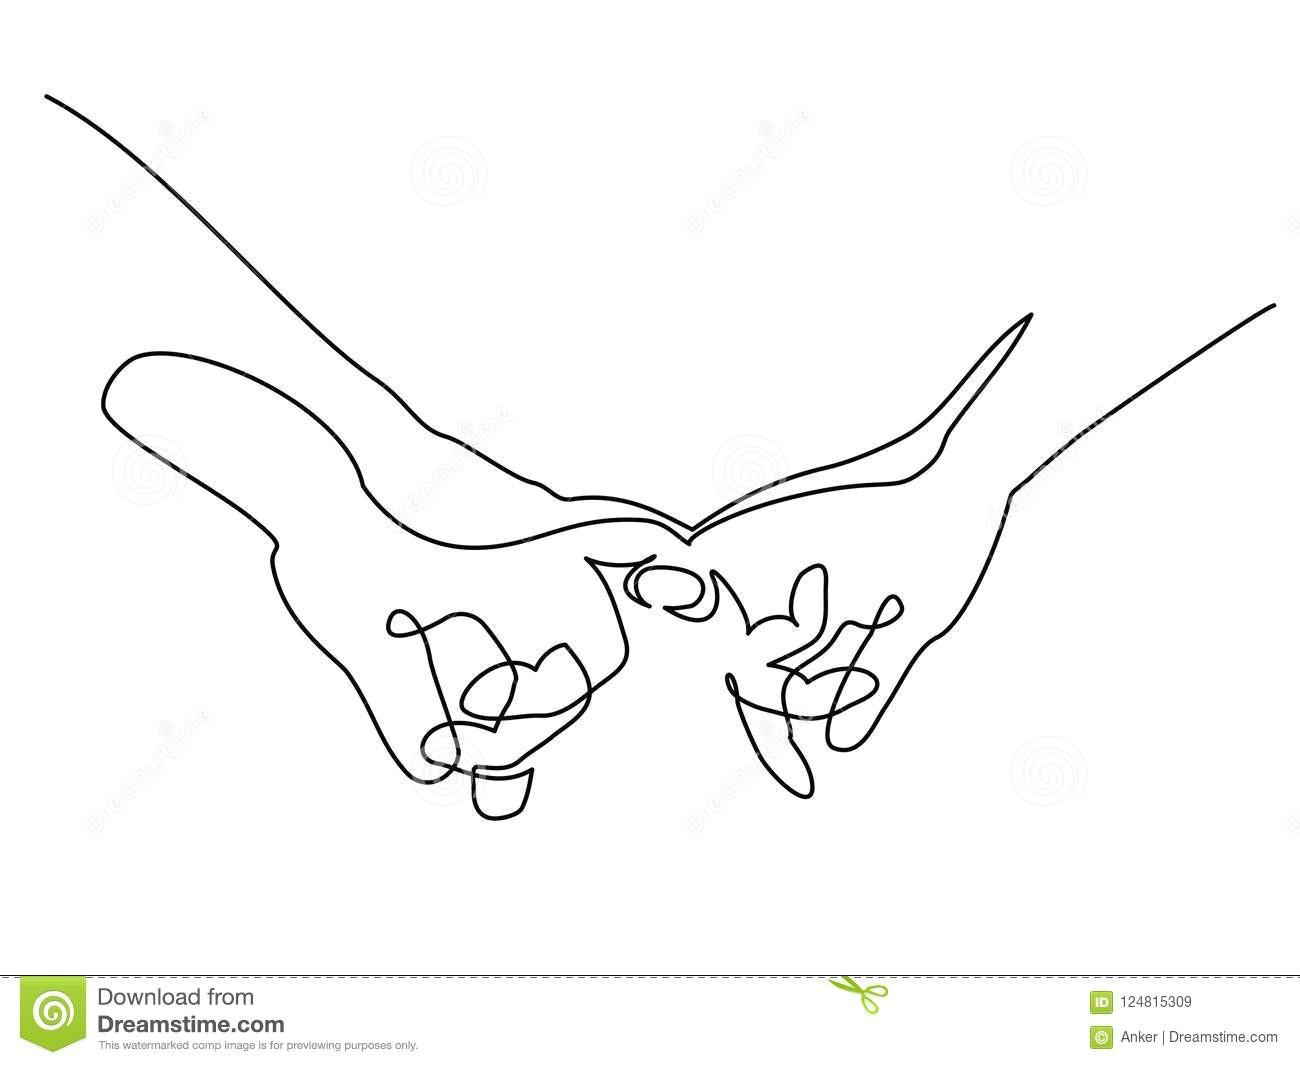 continuous one line drawing hands woman and man holding together with little fingers vector illustration concept for logo card banner poster flyer